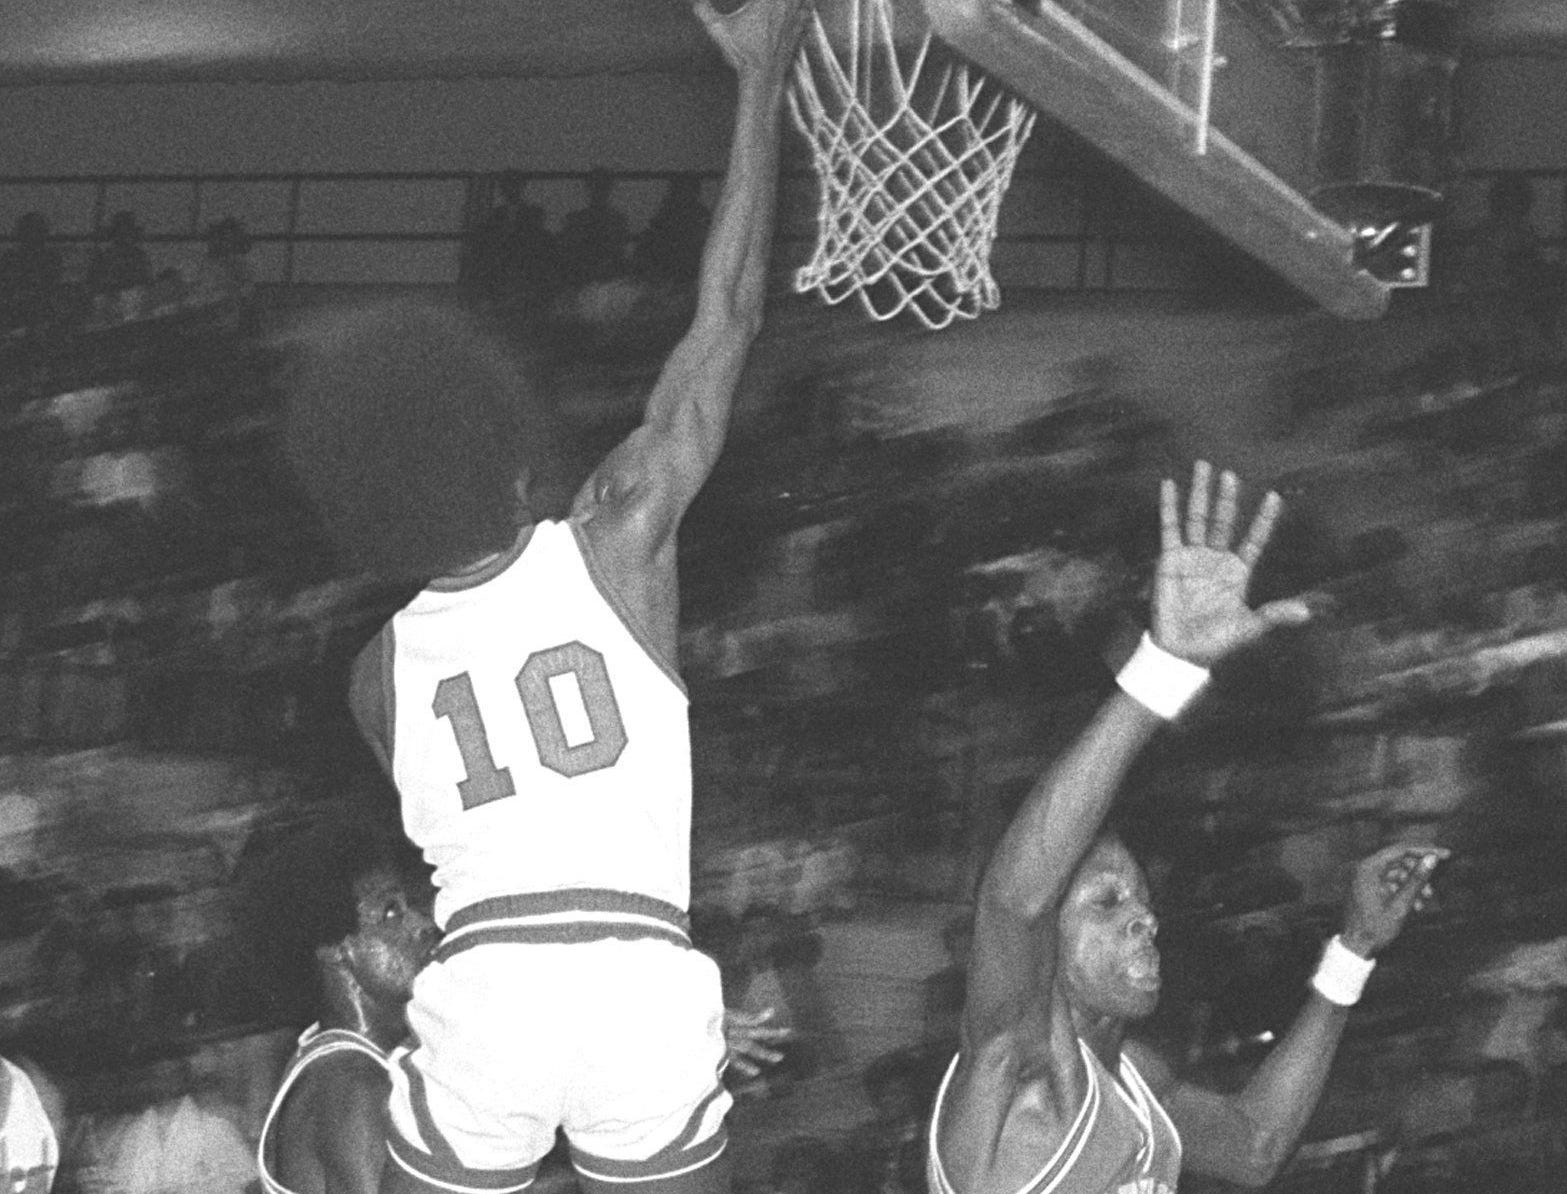 Hamilton's Eugene Pigues (10) gets a layup against Northside defenders in January 1975. Northside had four players in double figures and the Cougars made Hamilton their 19th victim of the season with a 94 to 70 win. Hamilton fell to 13-5.